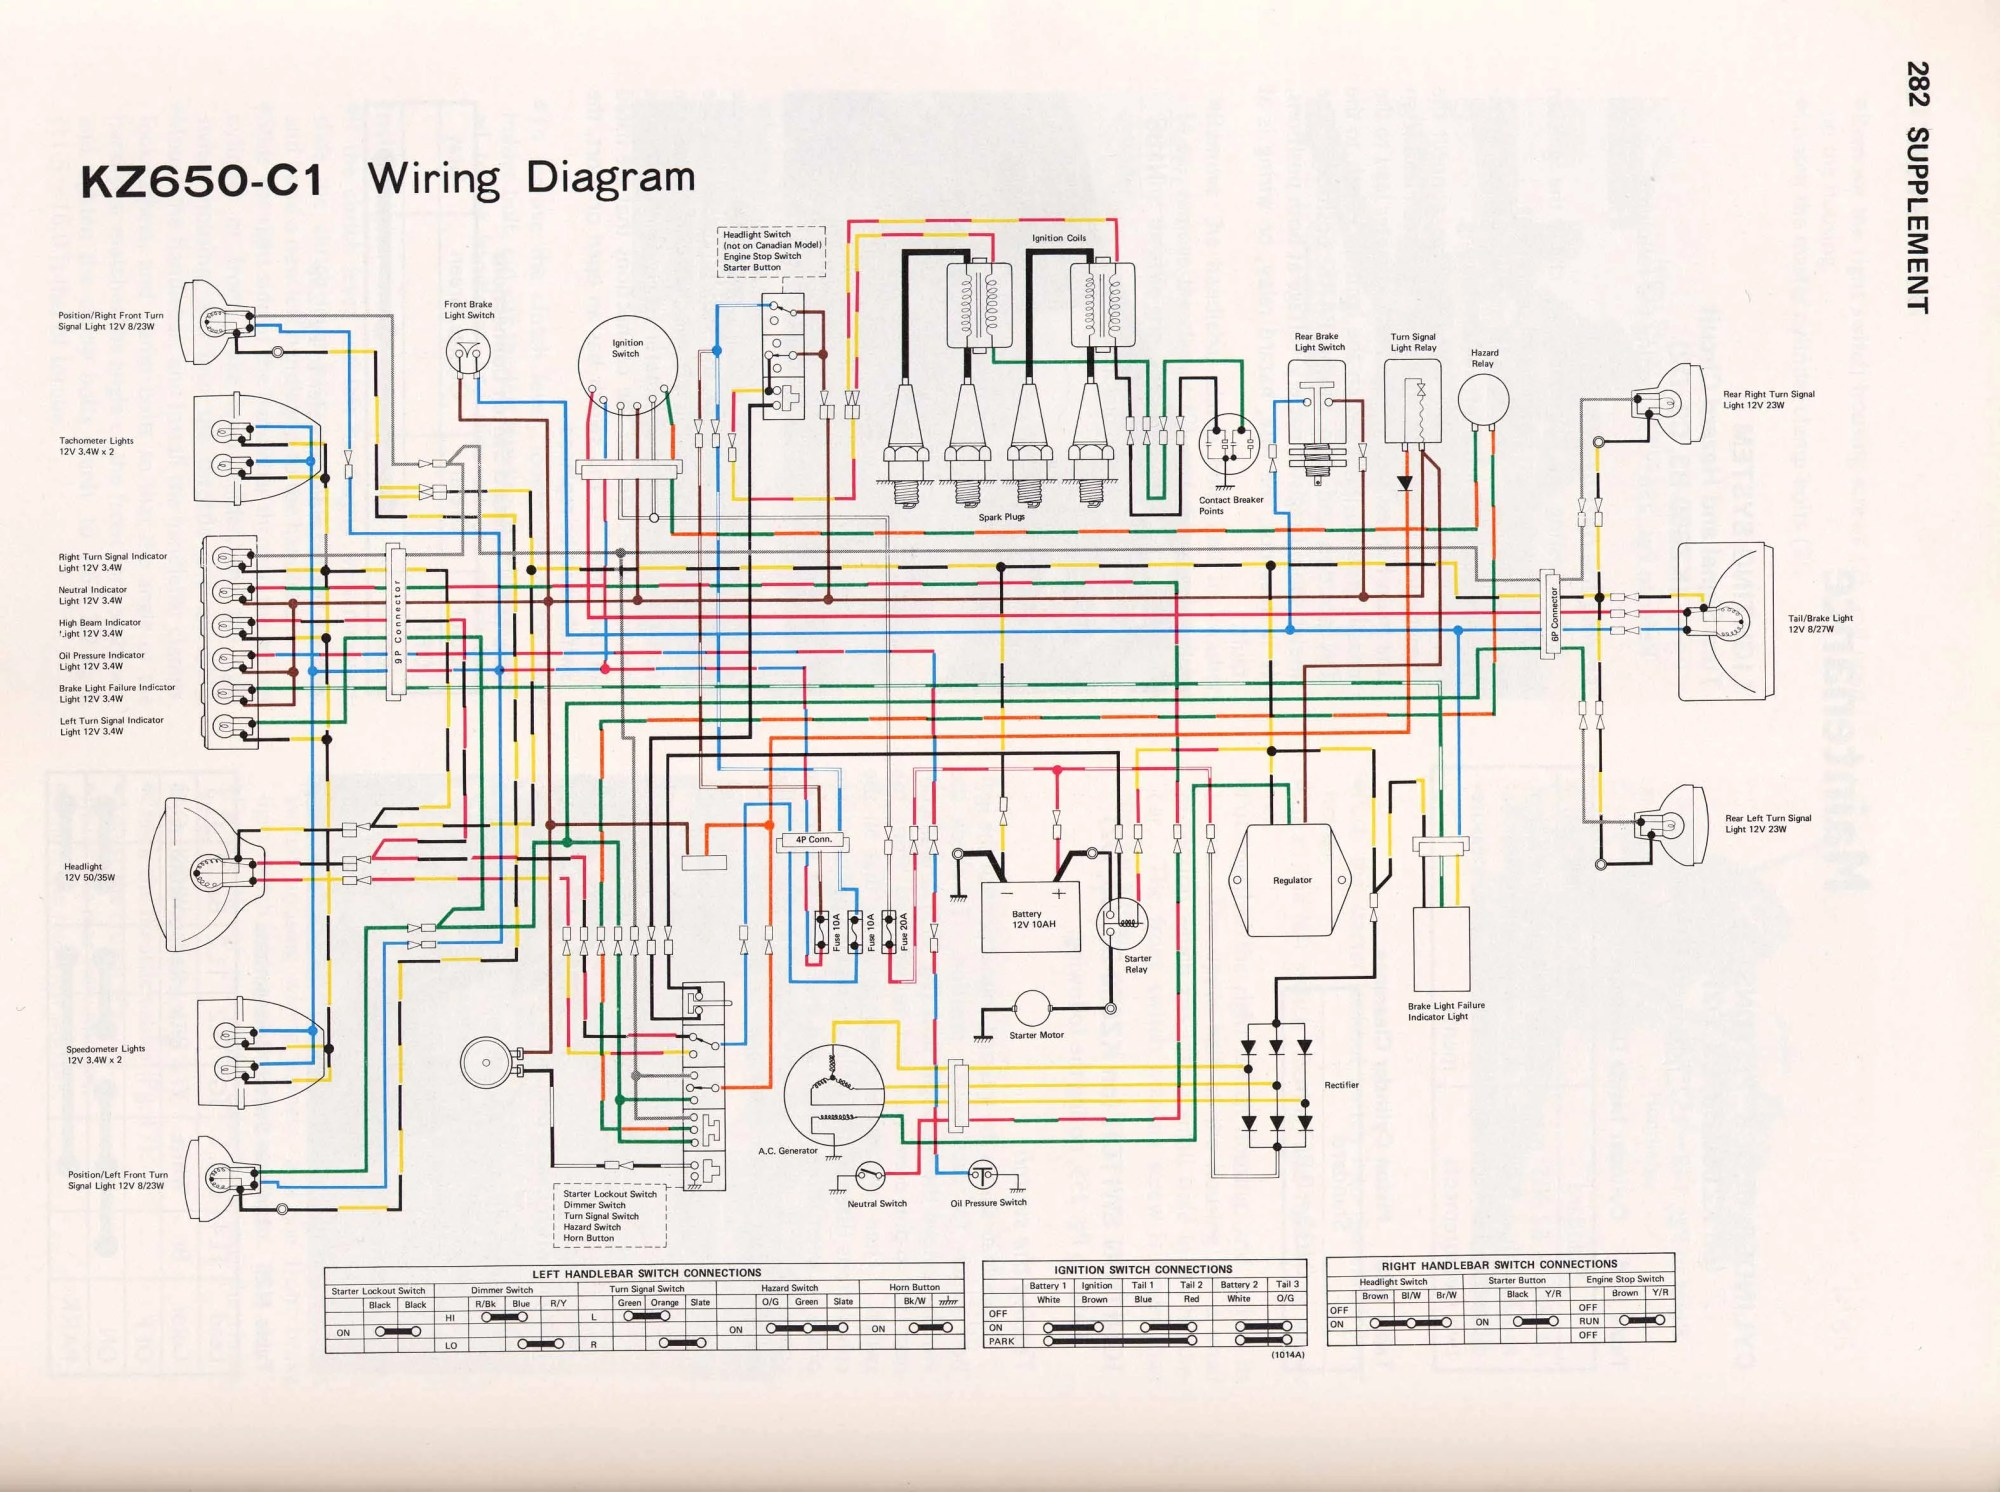 hight resolution of kz650 c1 kz650 info wiring diagrams kz650 c1 1979 yamaha 650